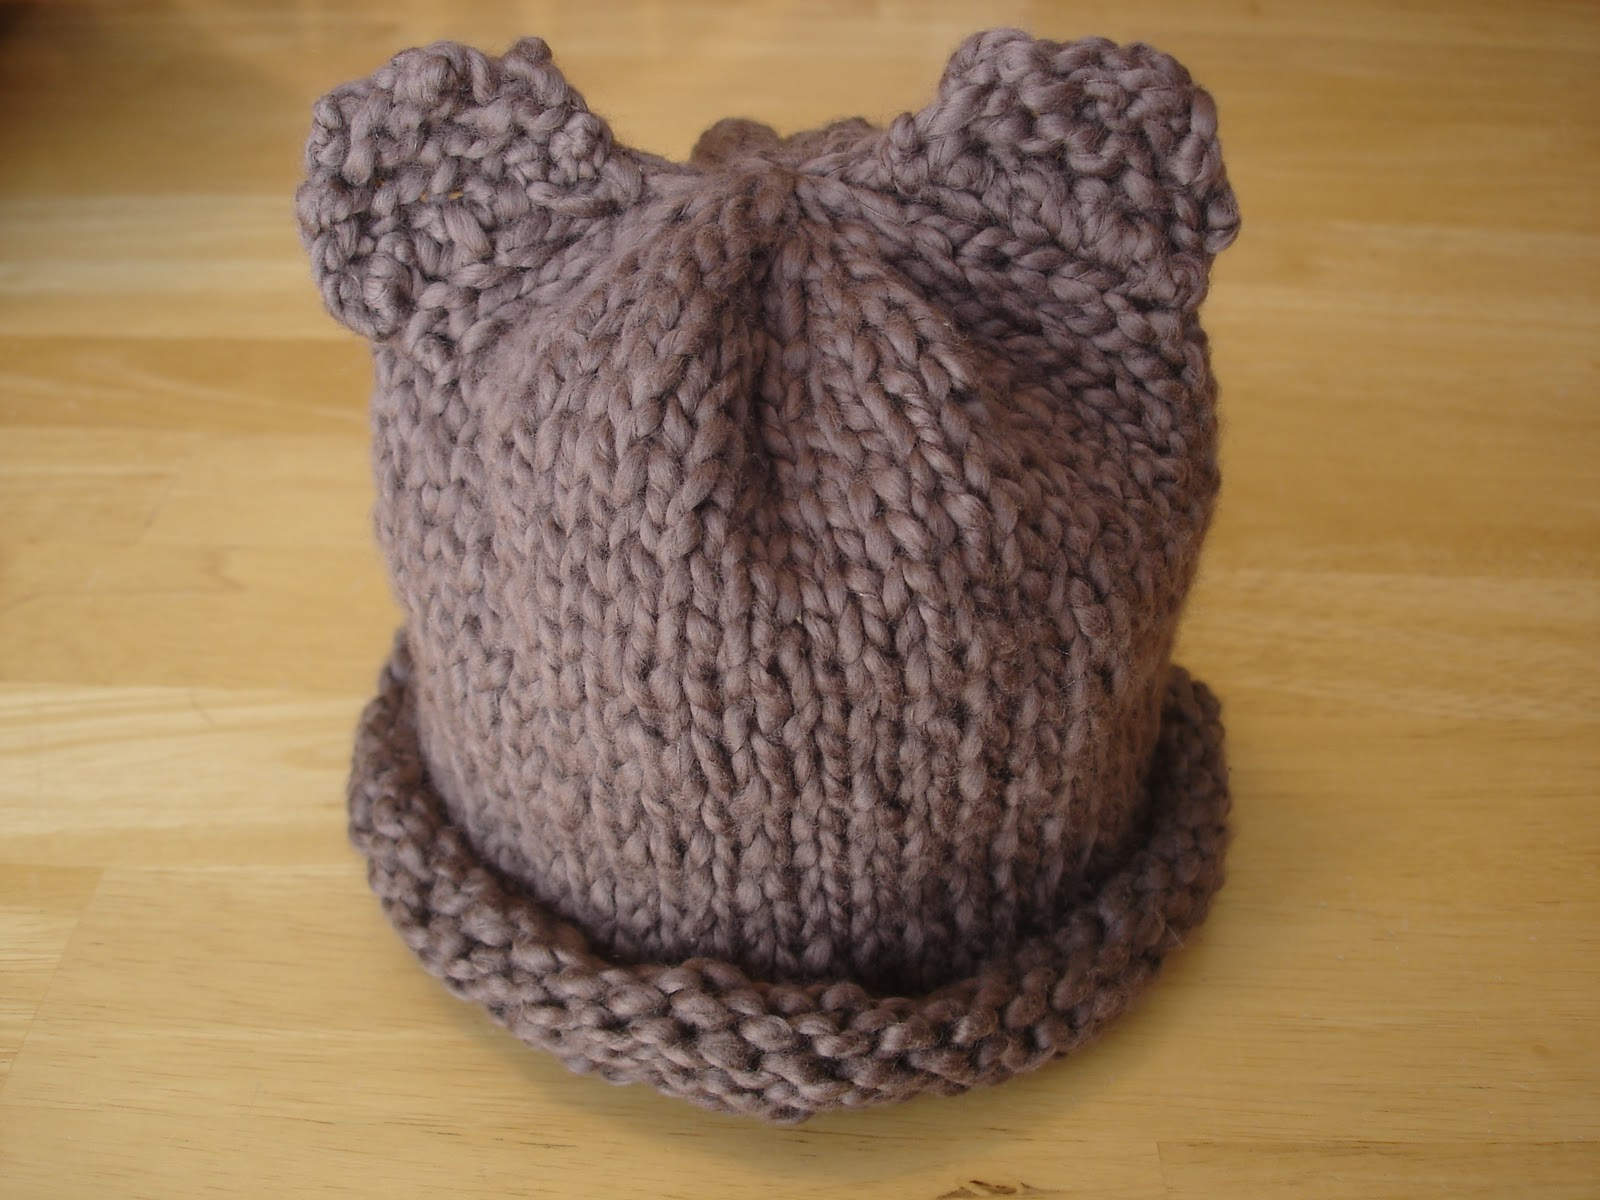 Knitting Patterns Child Hats Free : Fiber Flux: Free Knitting Pattern...Baby Bear Hat for Preemie, Newborn, and B...